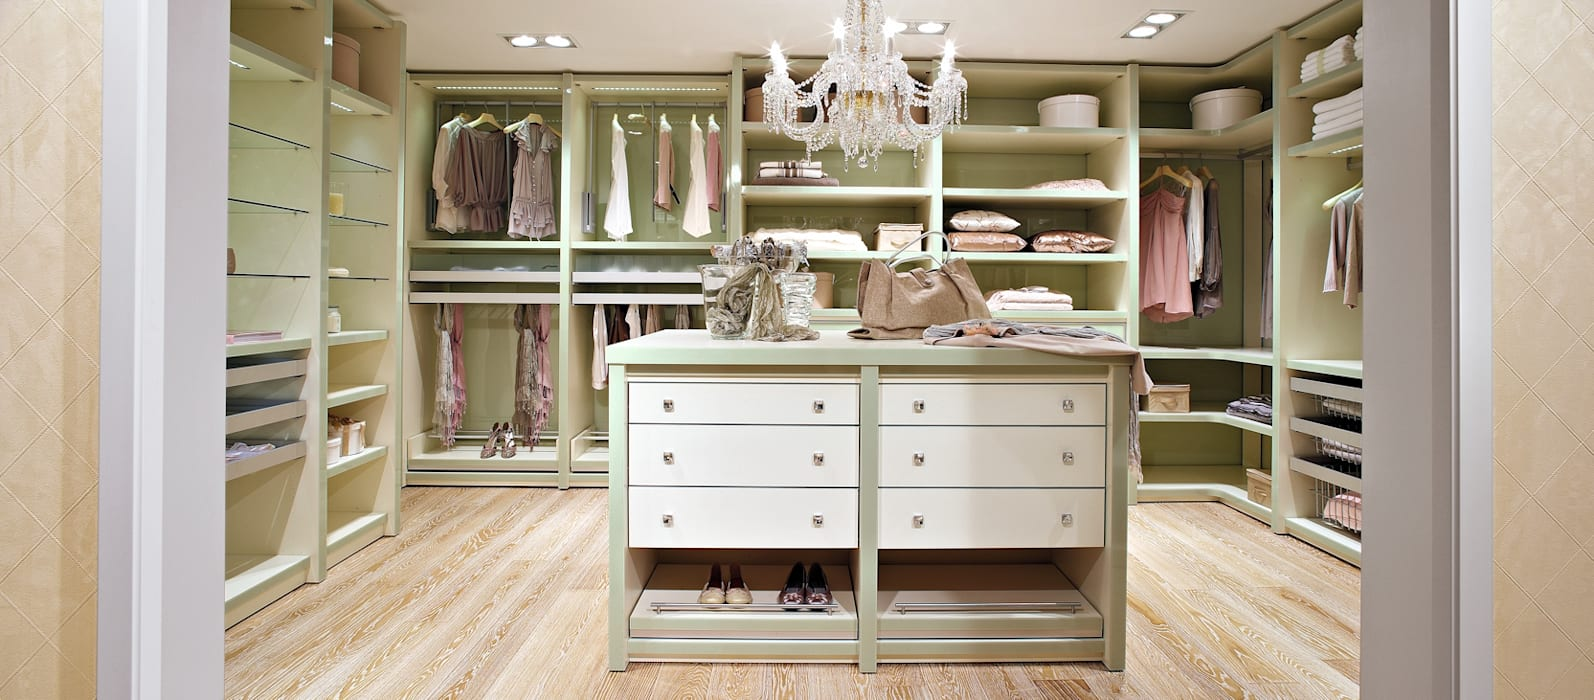 Cabinet Schranksysteme Ag Dressing Roomwardrobes Drawers Homify